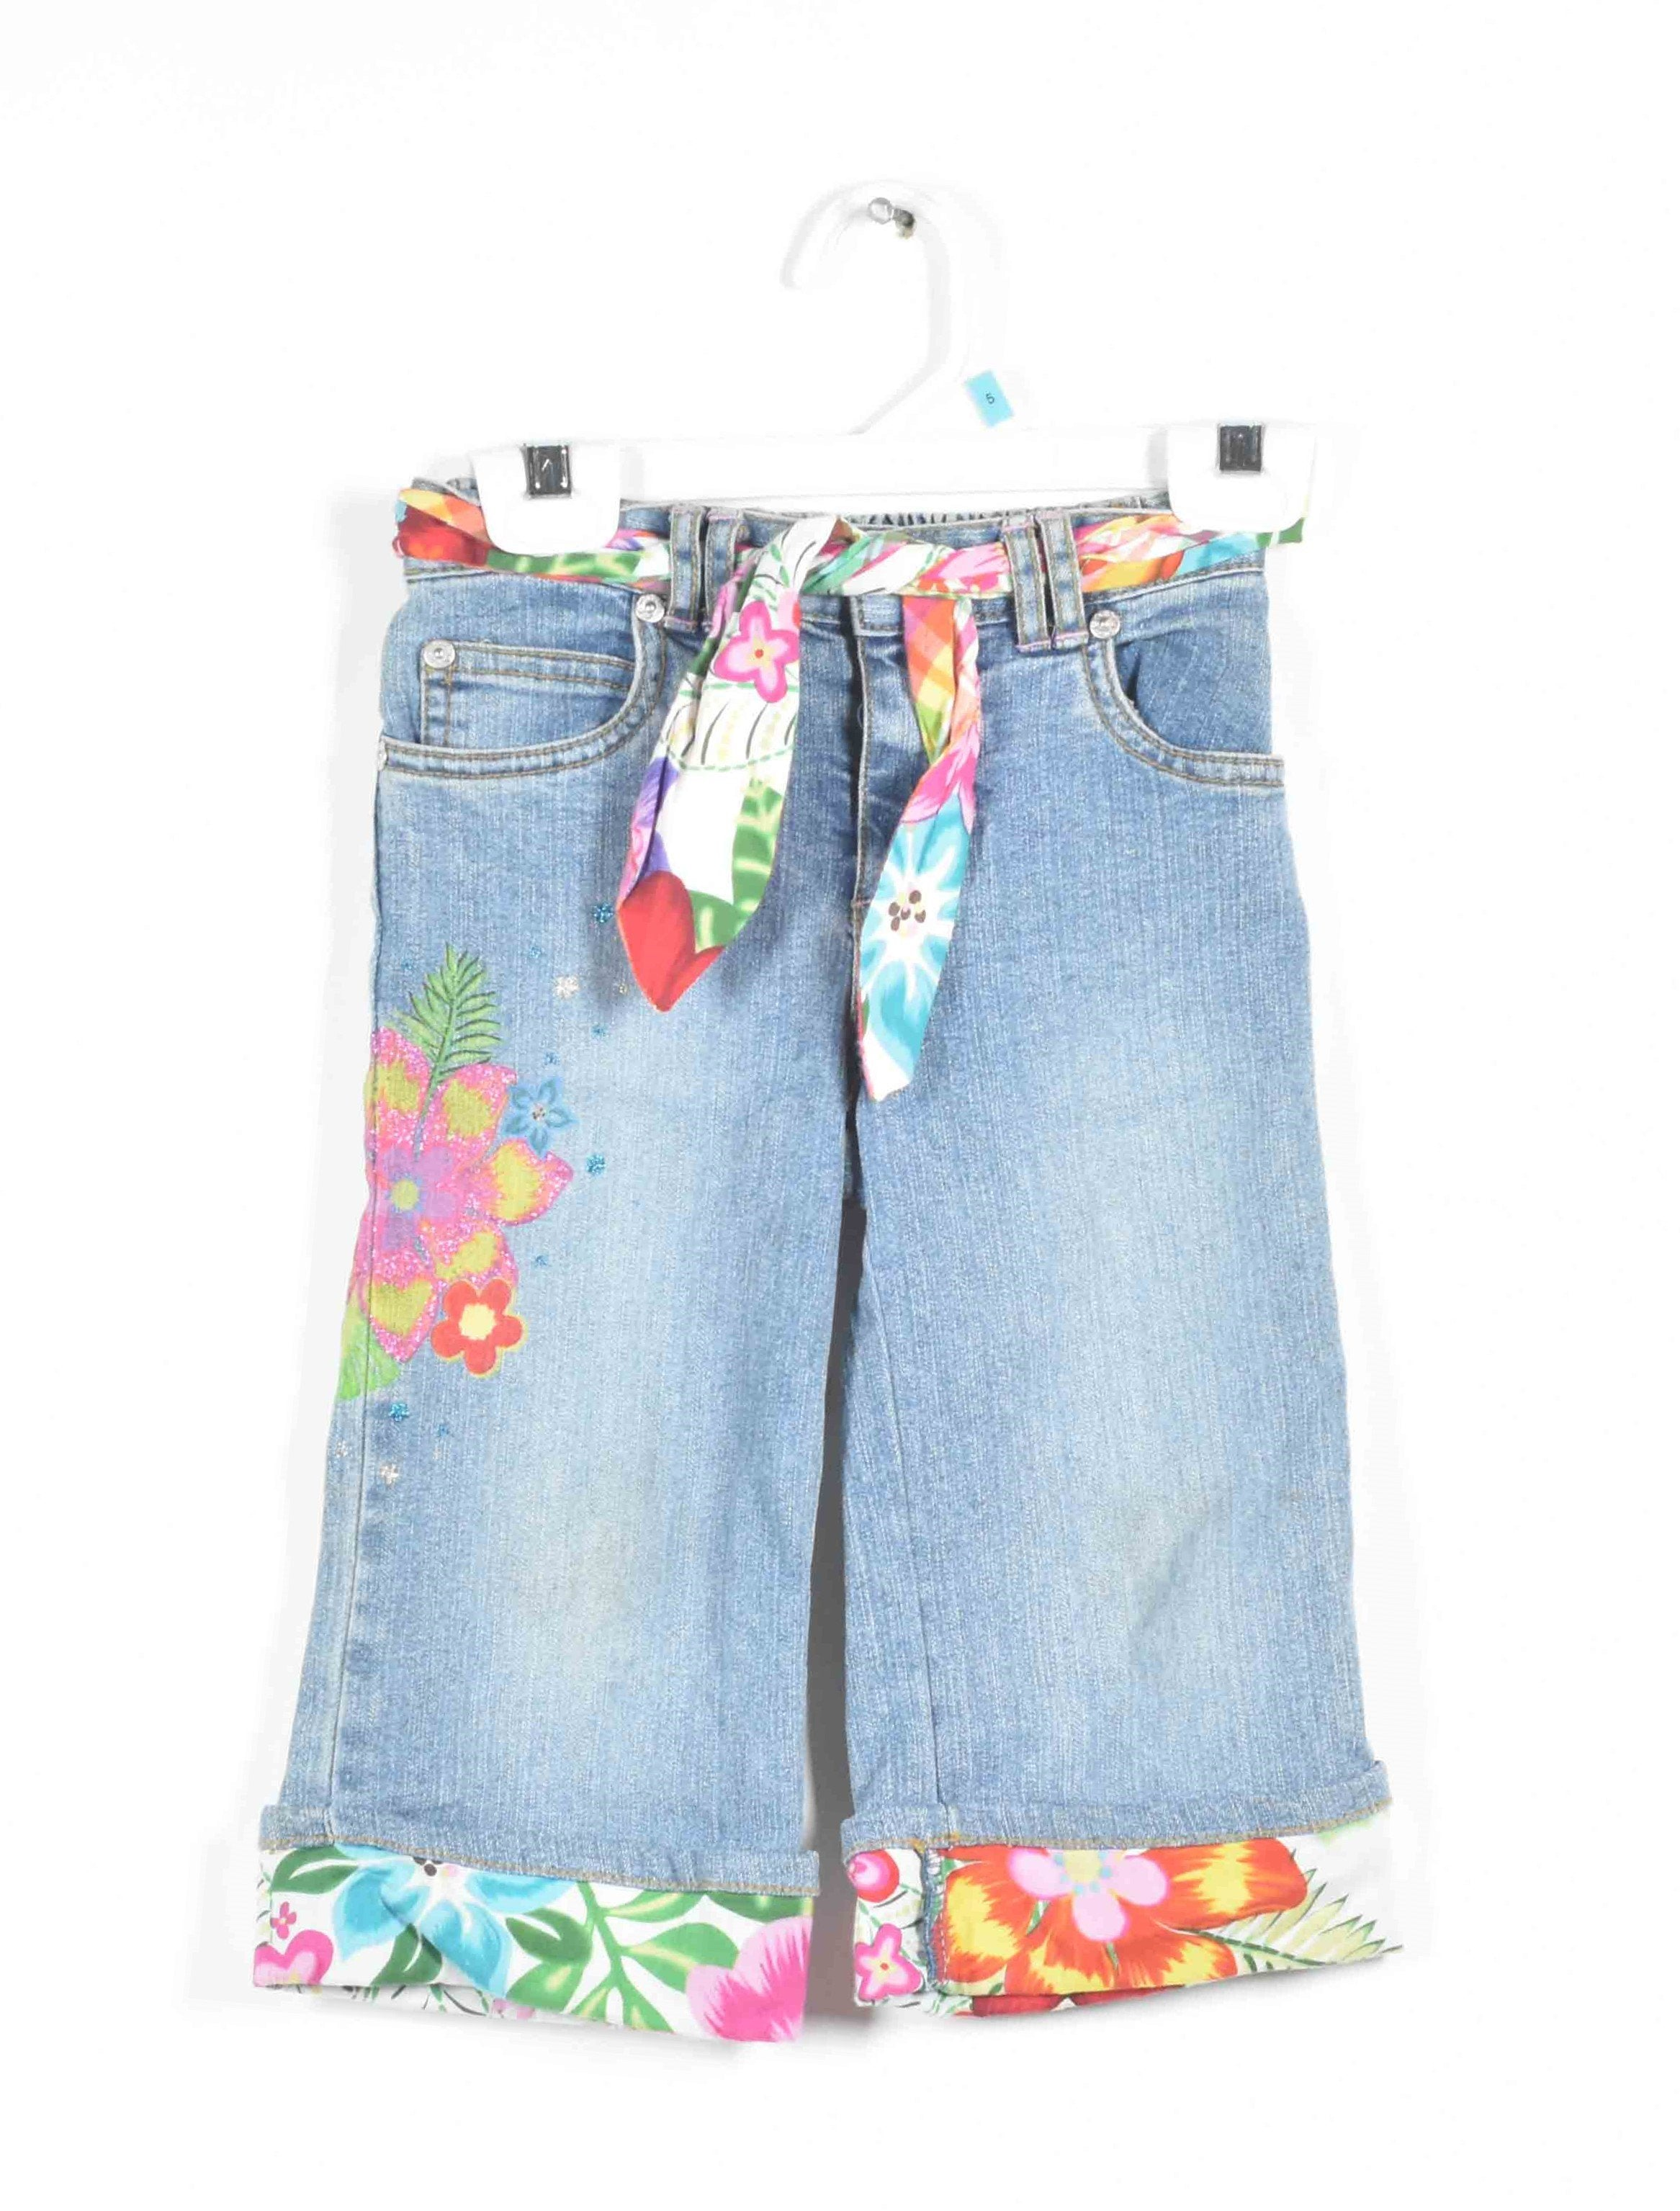 Gone Baby Gone: Amanda's Tropical Flower Jeans Double